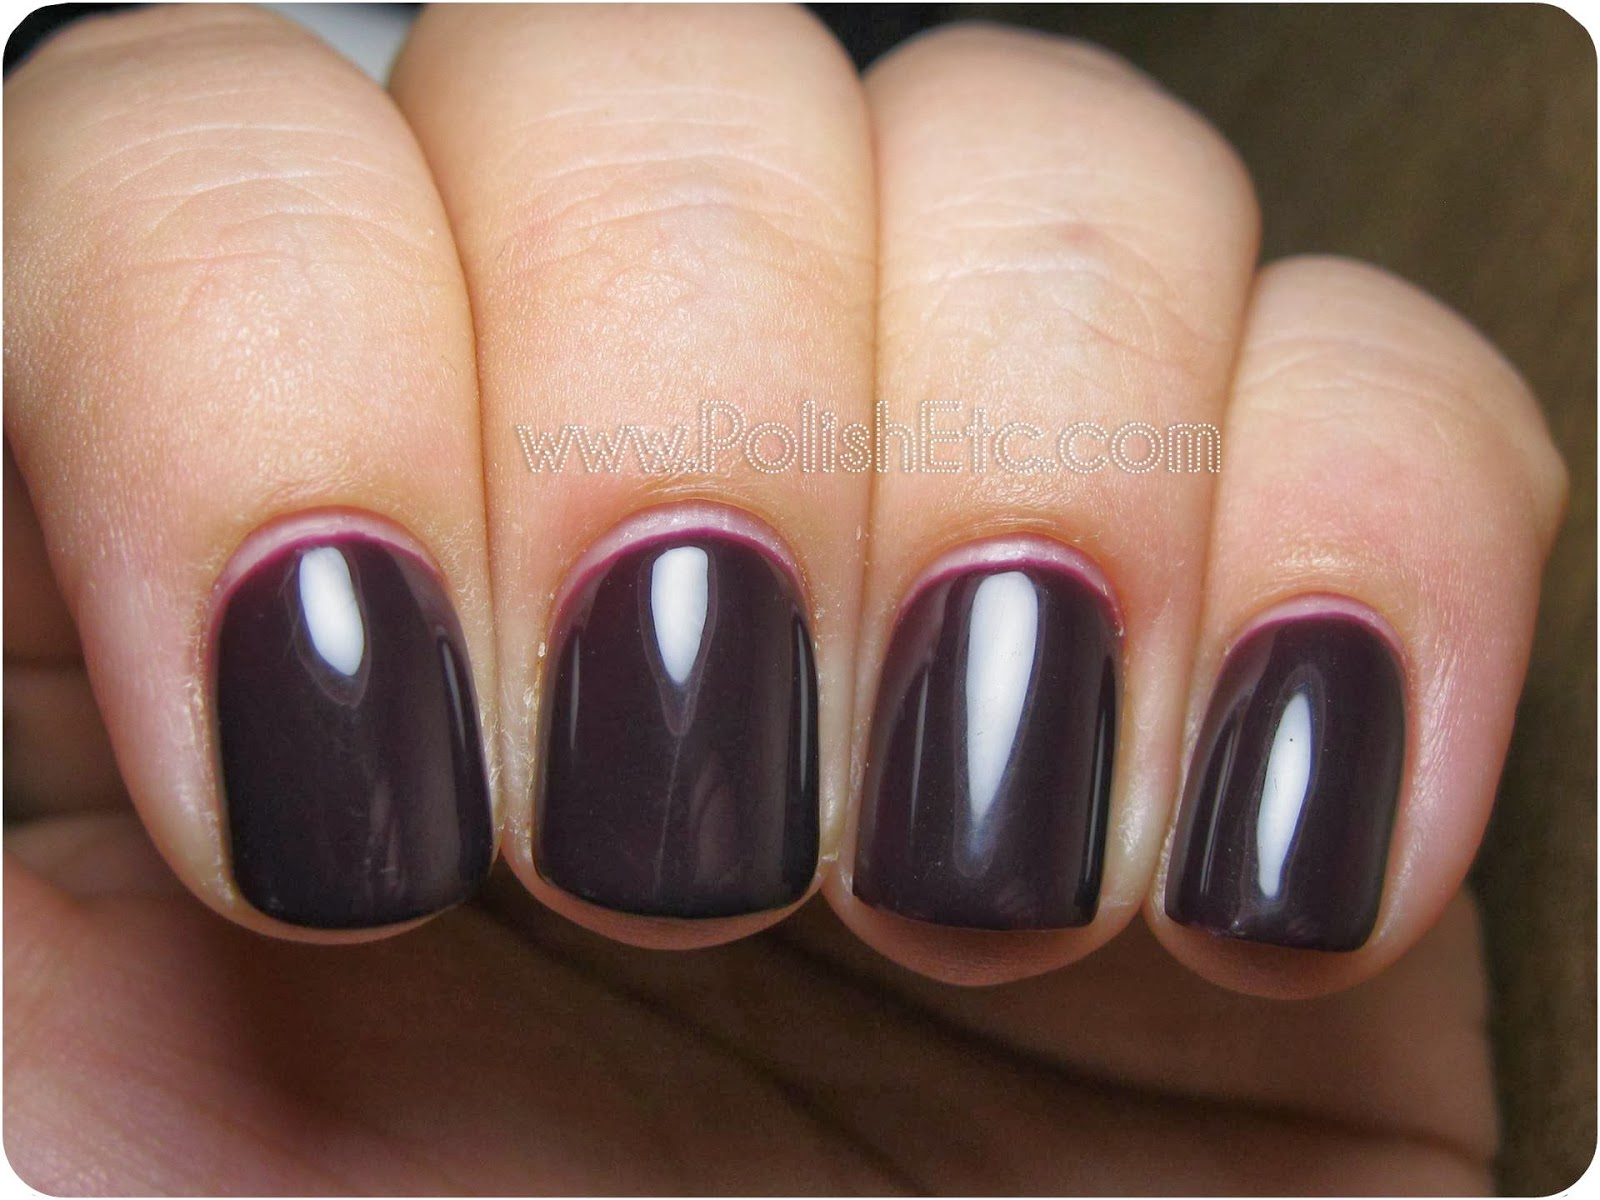 Gelish Love Me Like A Vamp Swatches and Review! - Polish Etc.